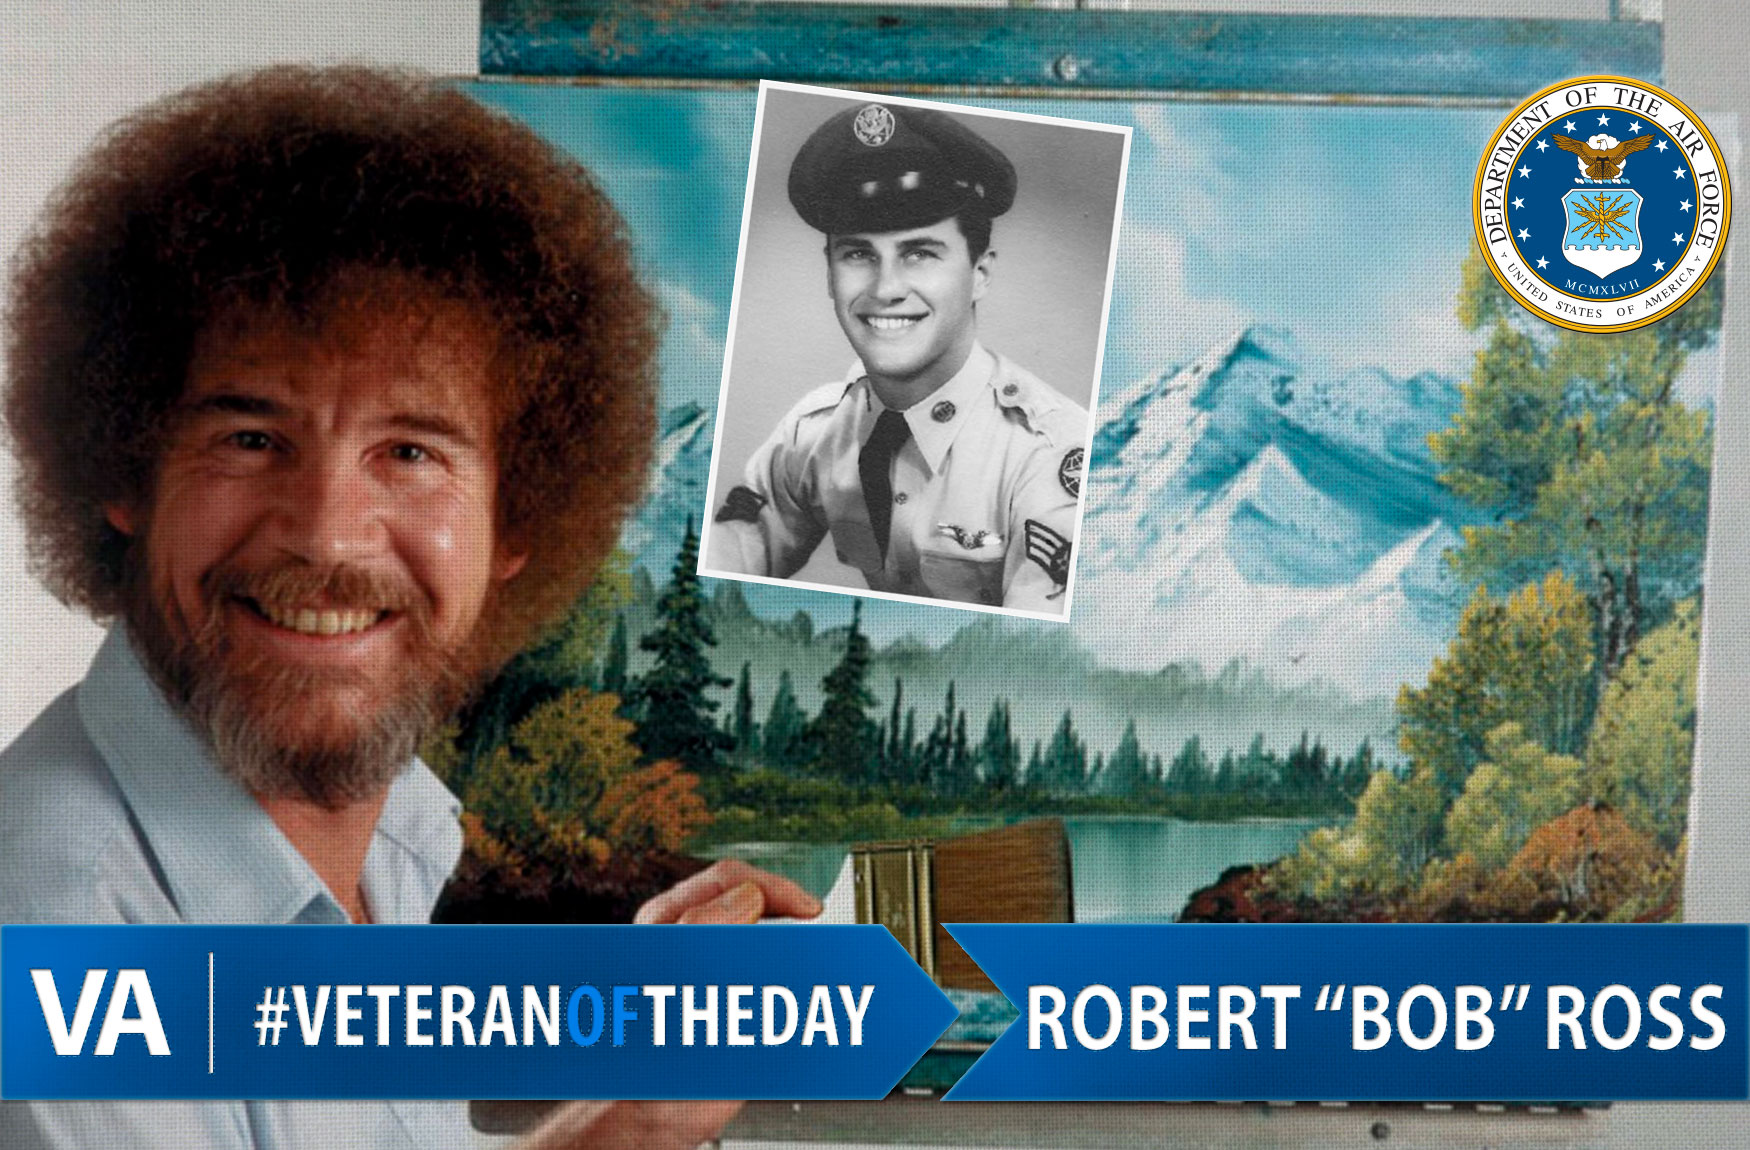 VeteranOfTheDay Air Force Veteran Bob Ross - VAntage Point